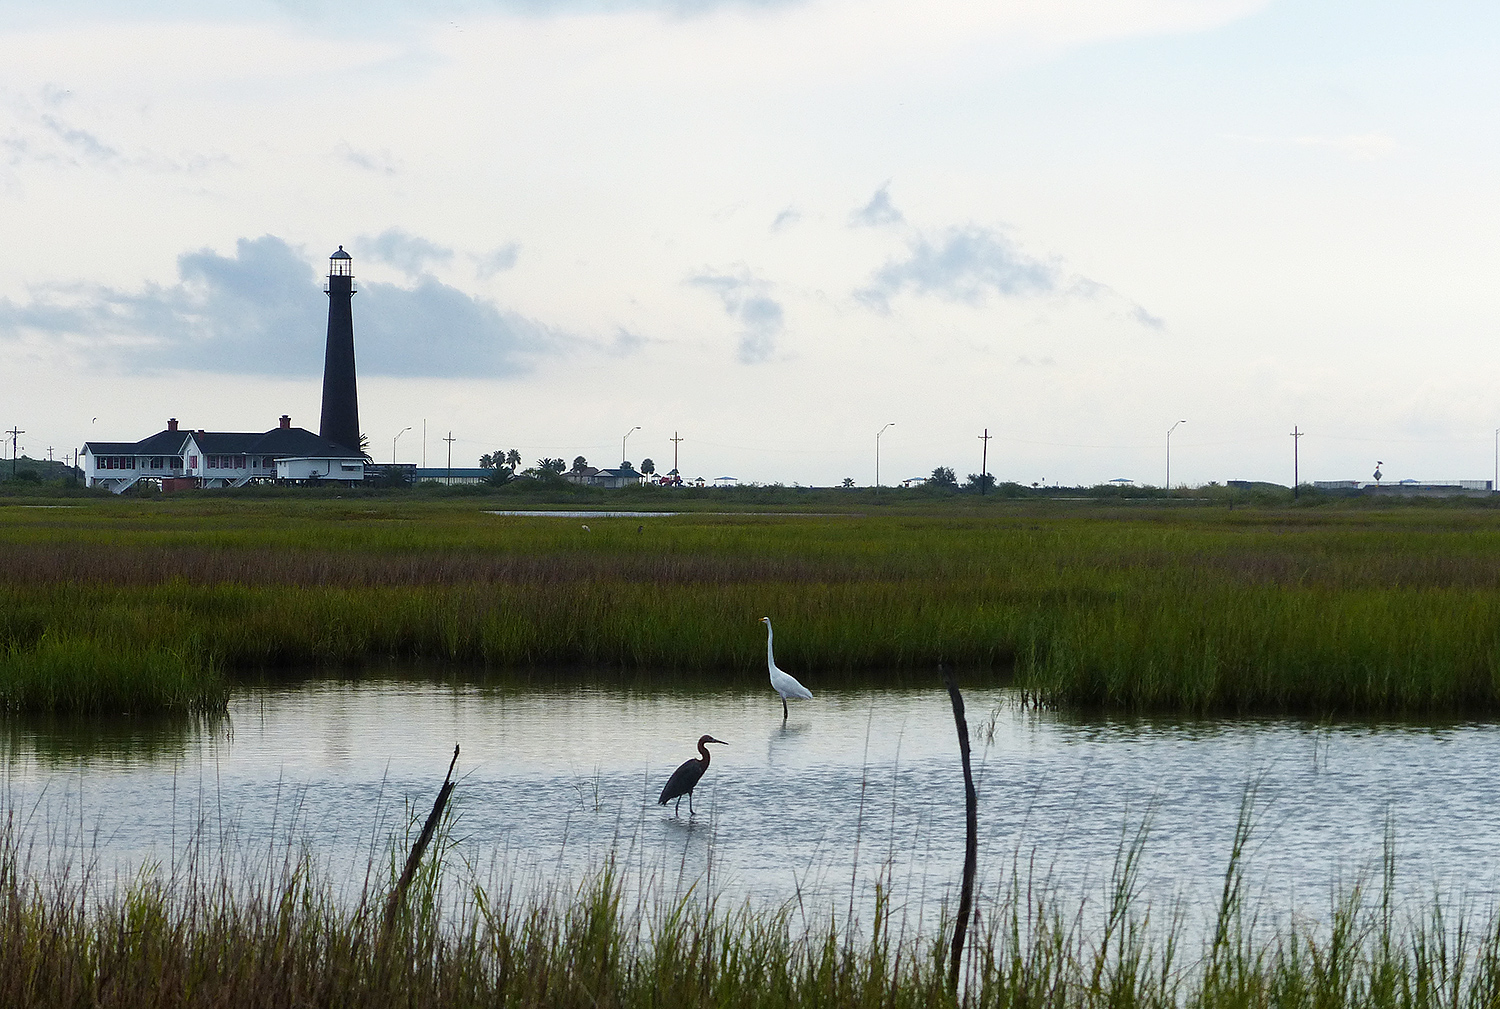 Bolivar Flats with lighthouse